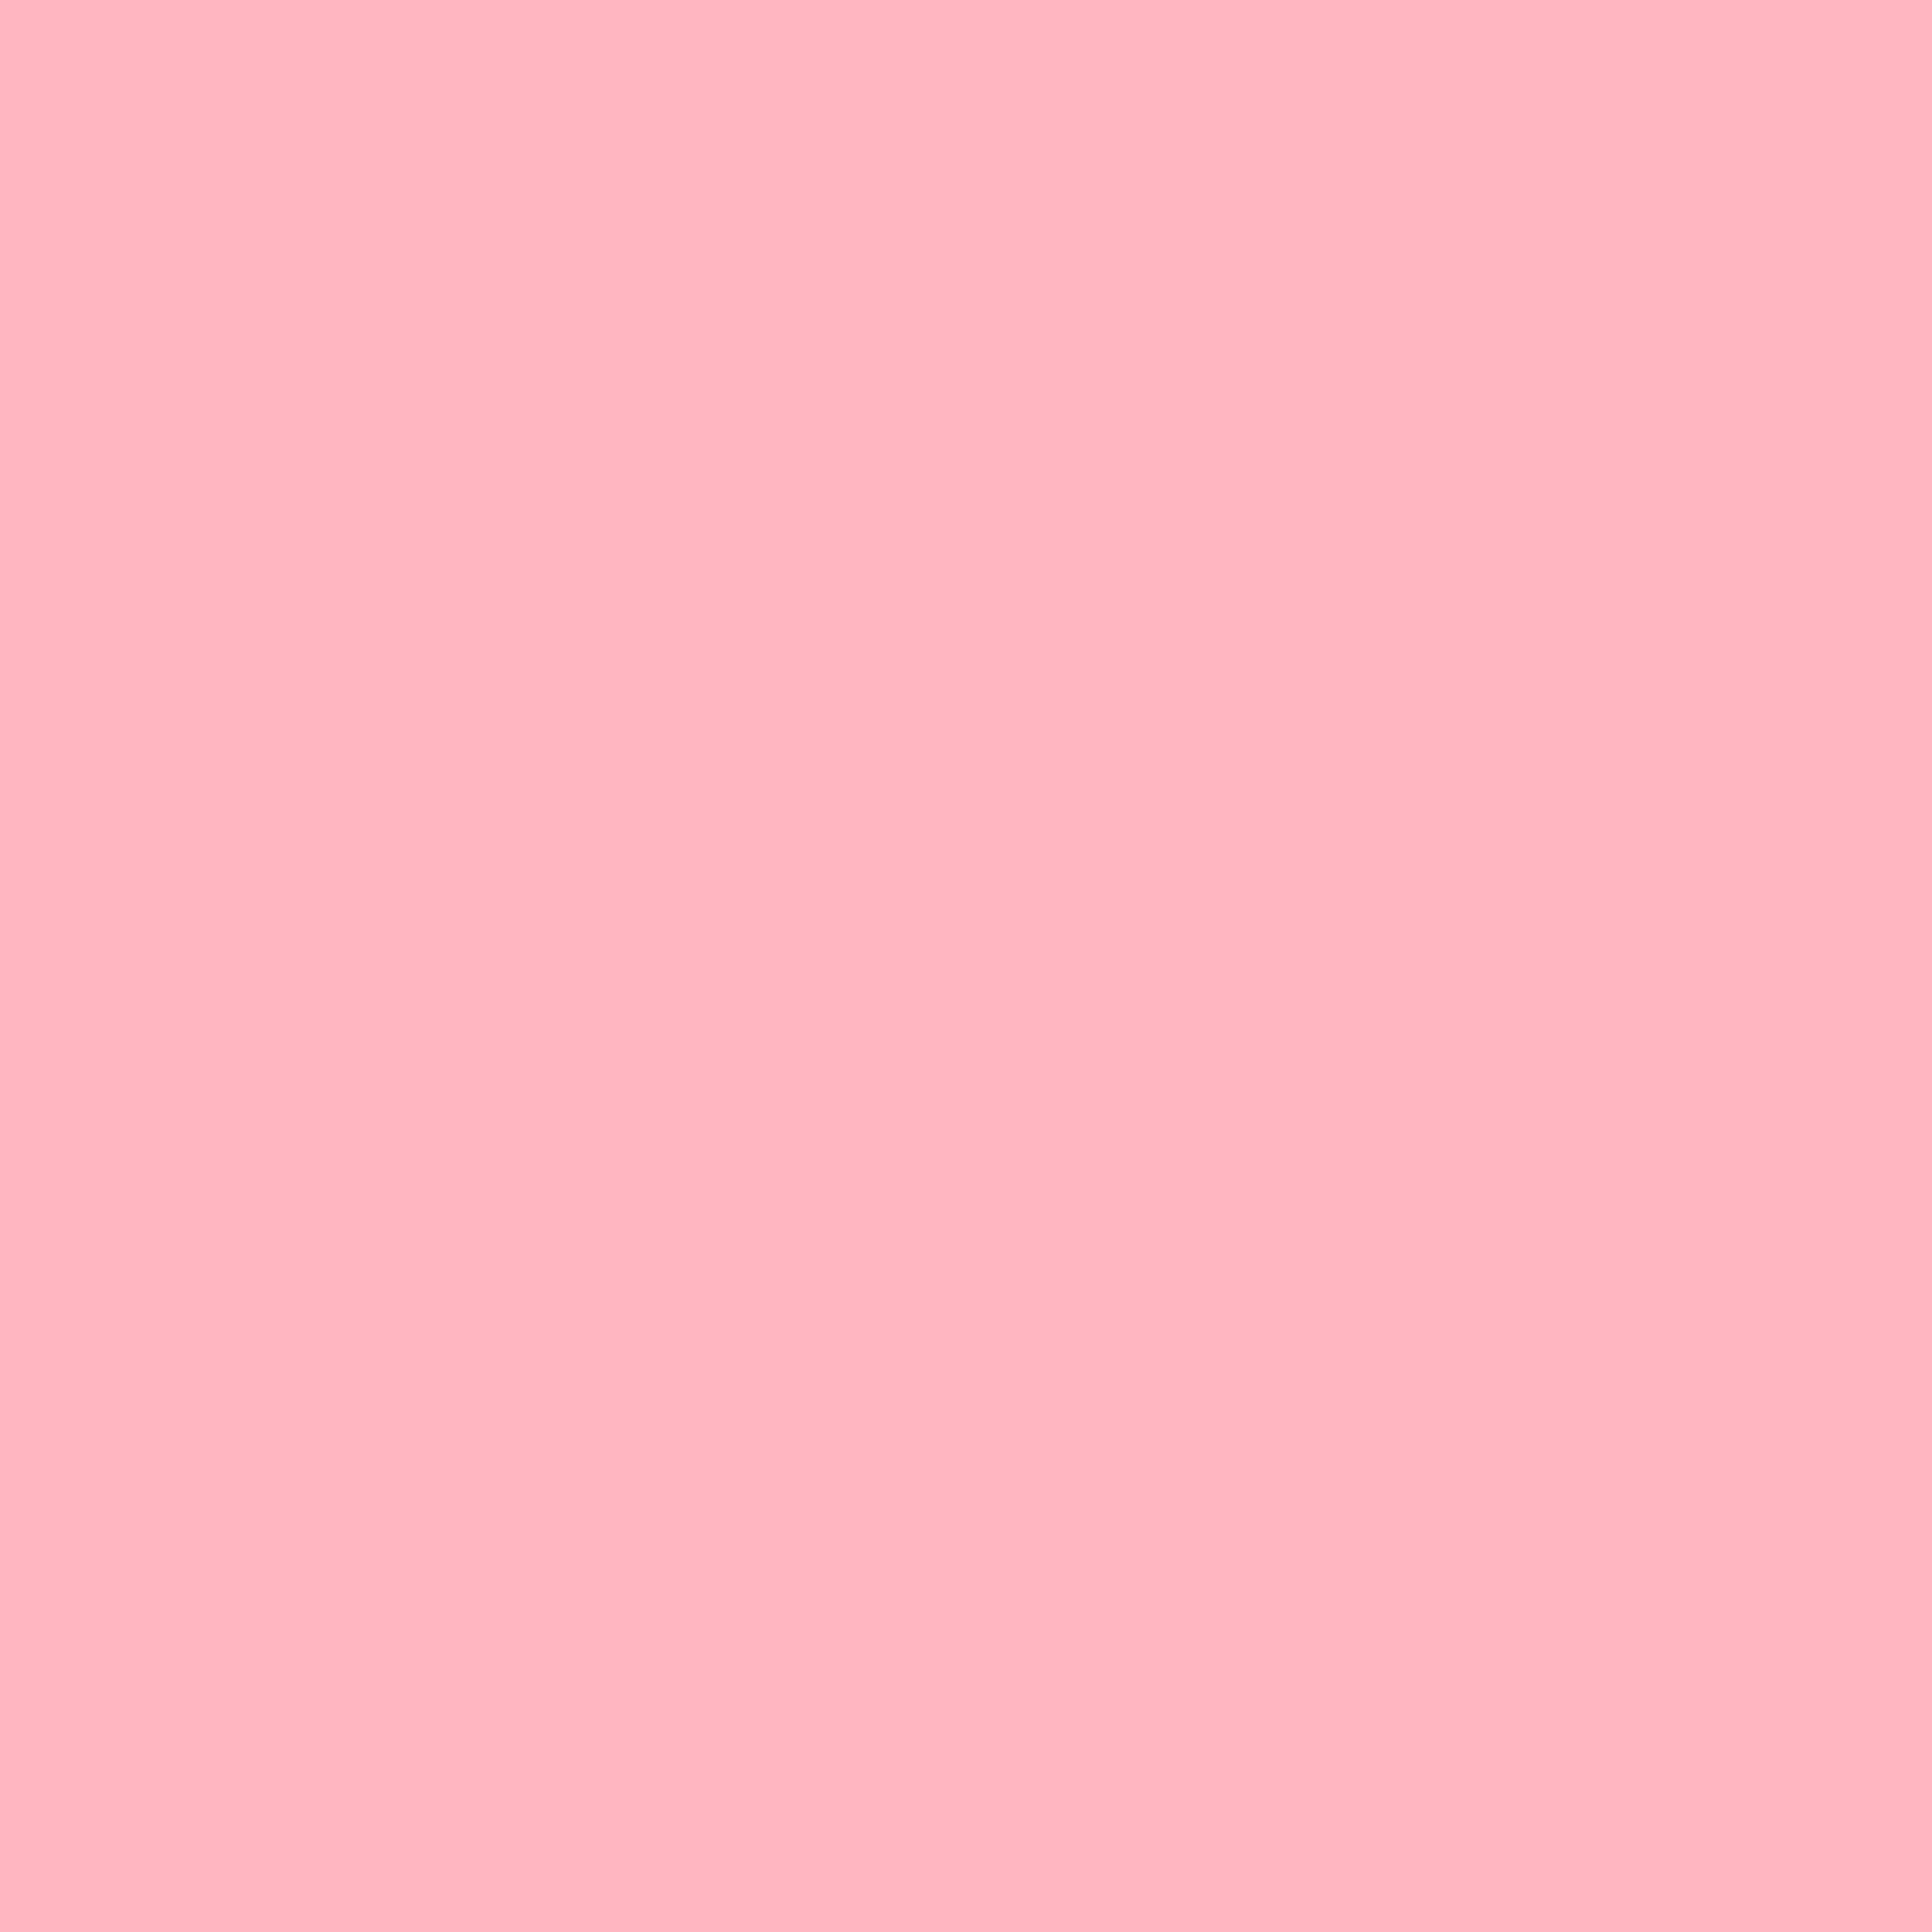 pale pink color background - photo #23